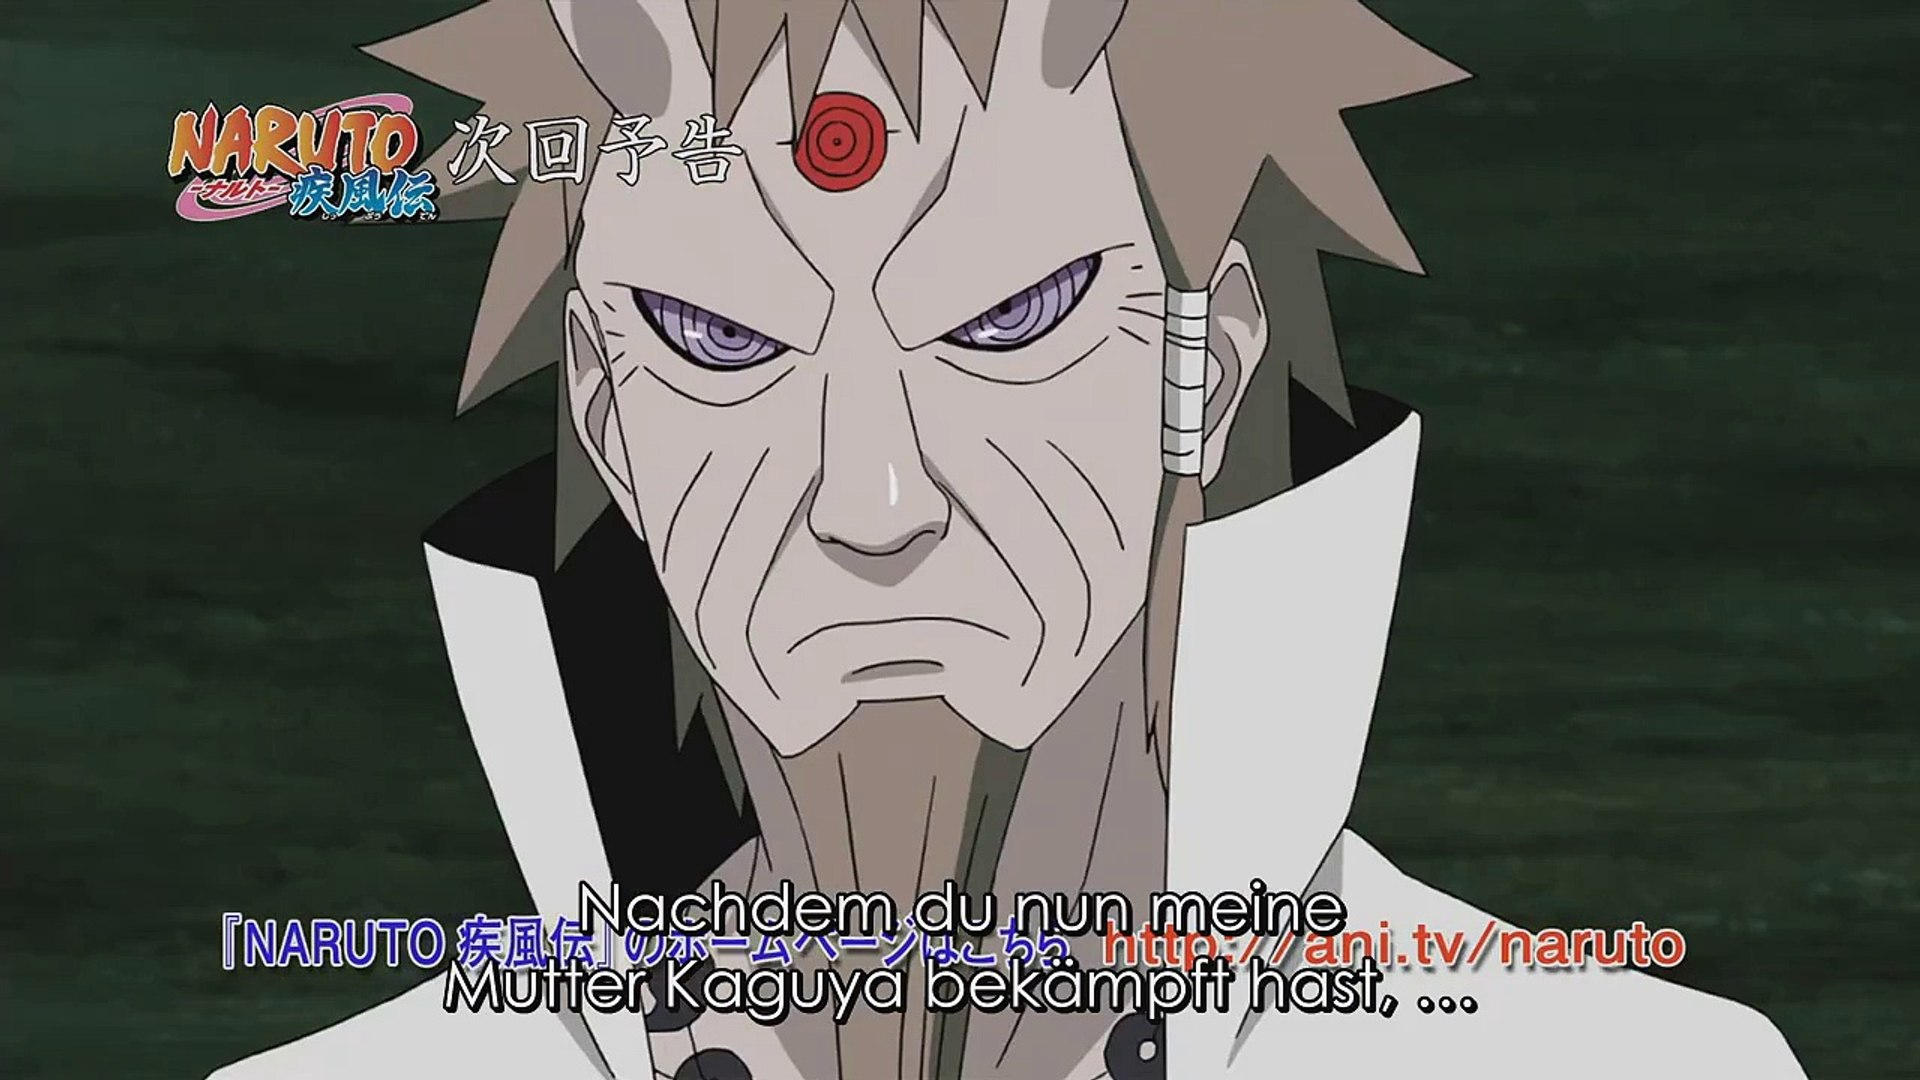 The Final Valley - Naruto Shippuden Episode 475 Preview English sub